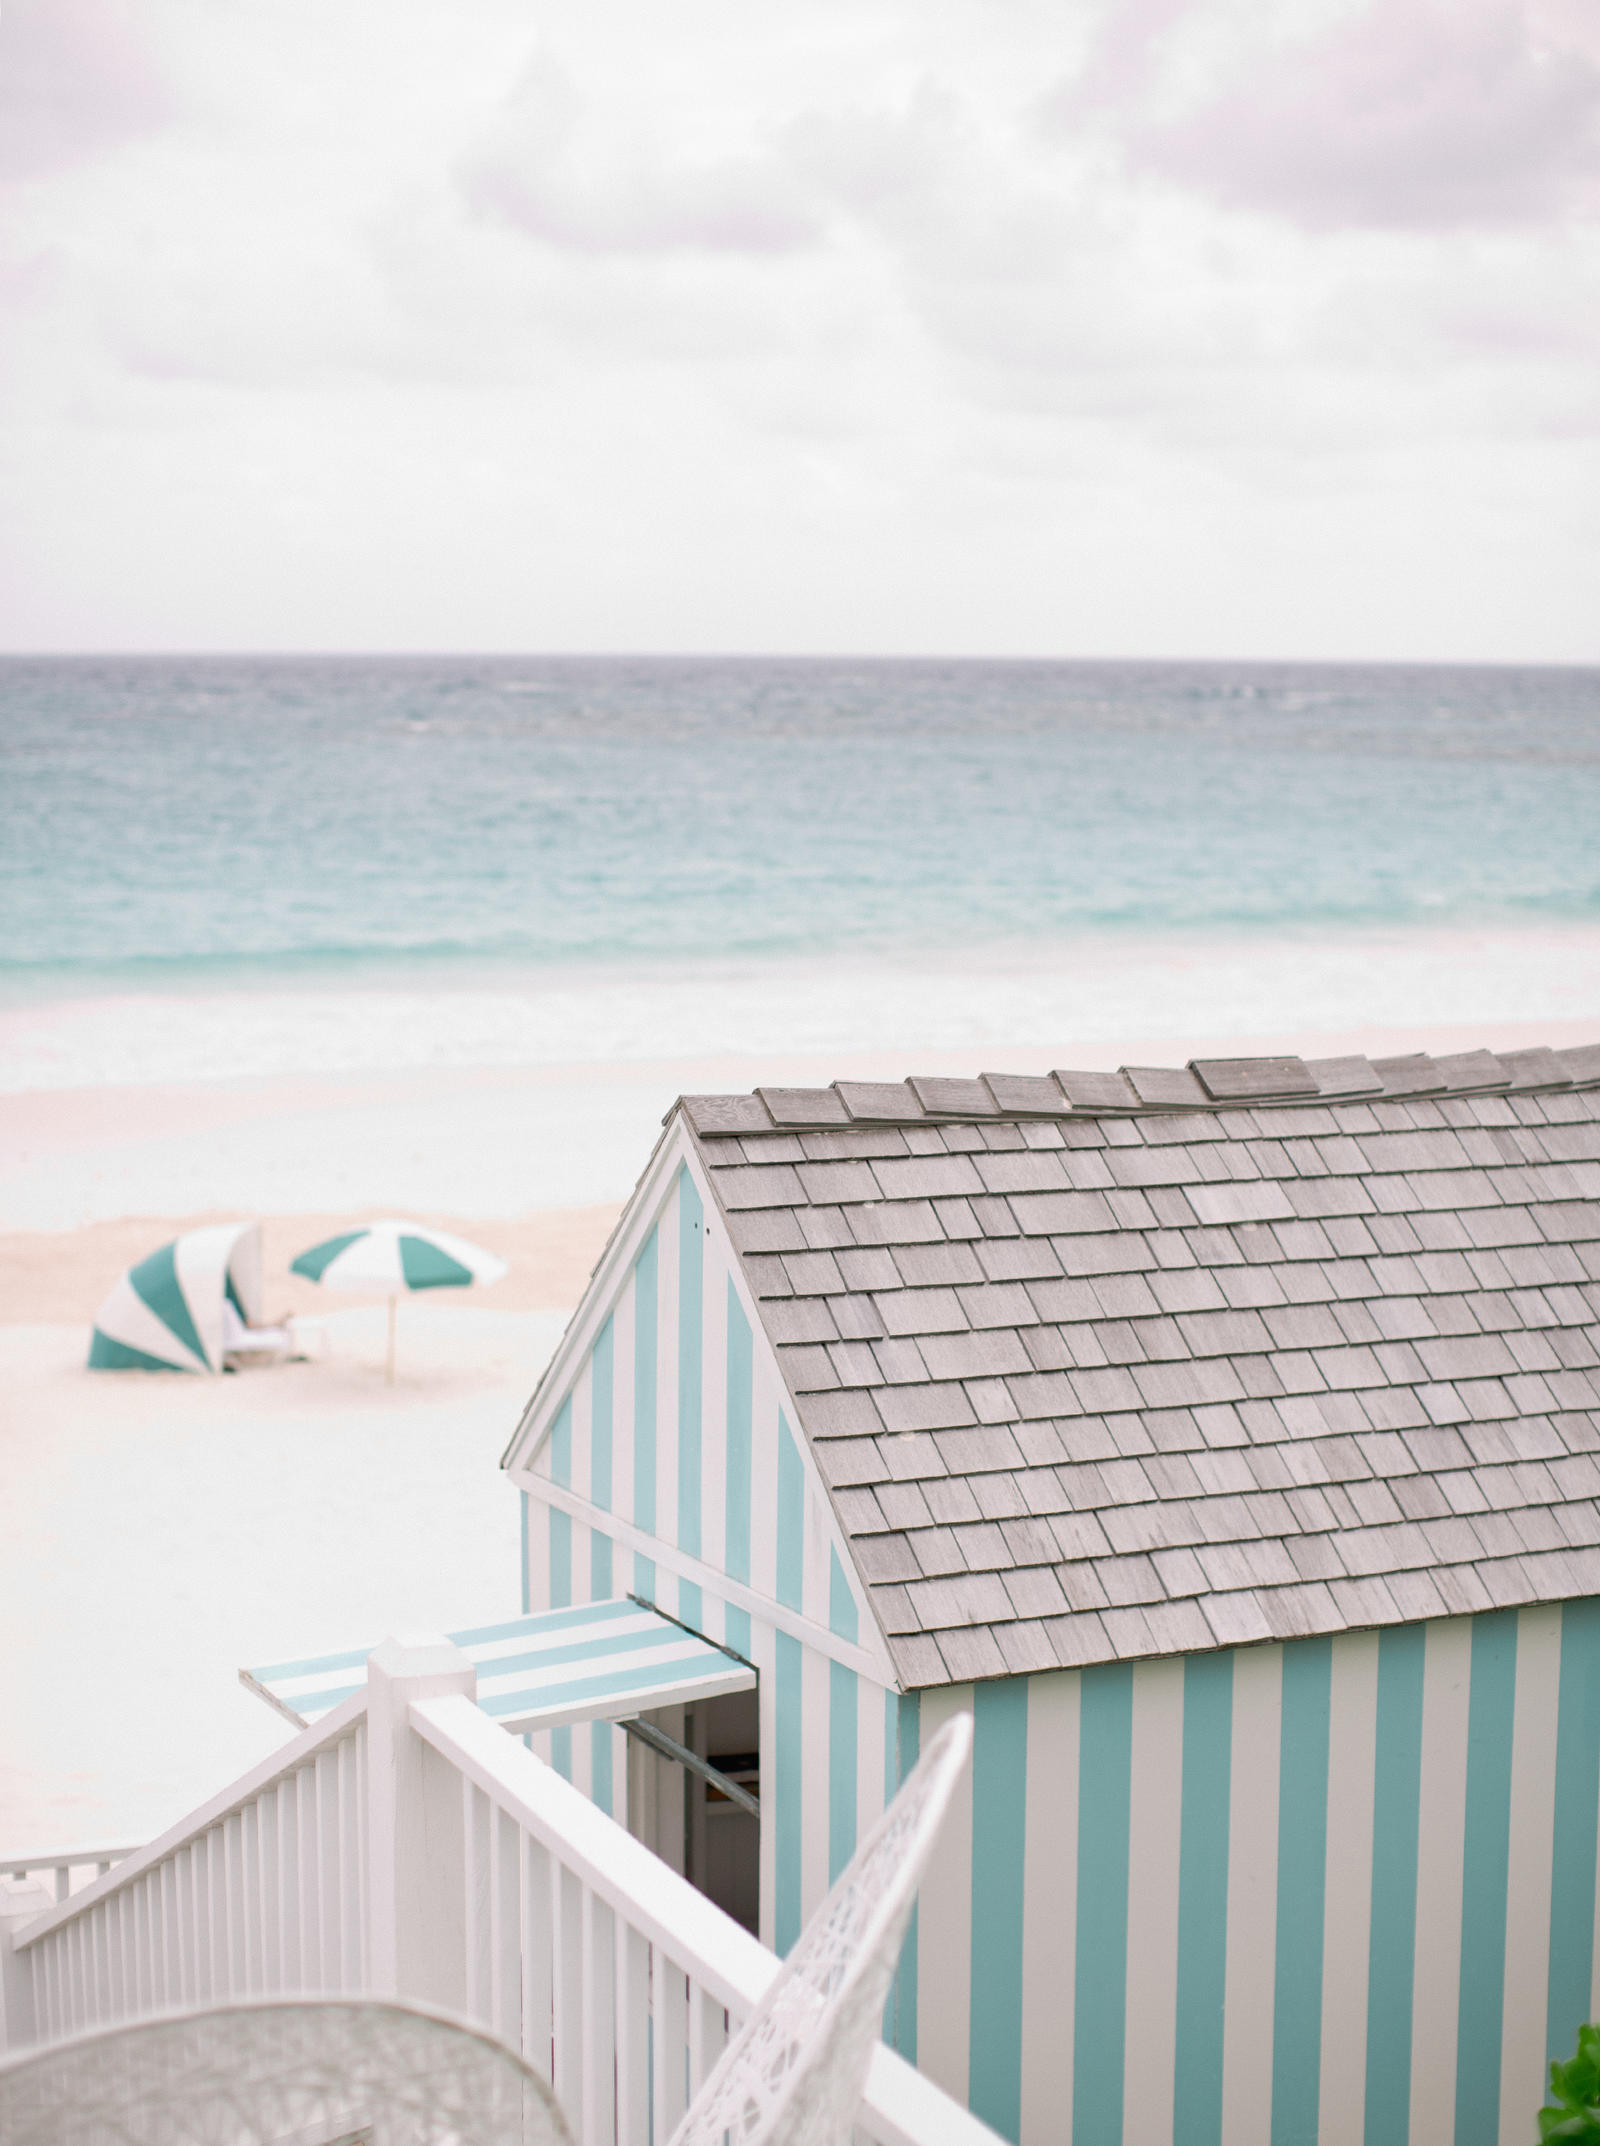 Lifestyle Photography, Atlanta | A view looking out at the beach.  A beach house stands in the foreground.